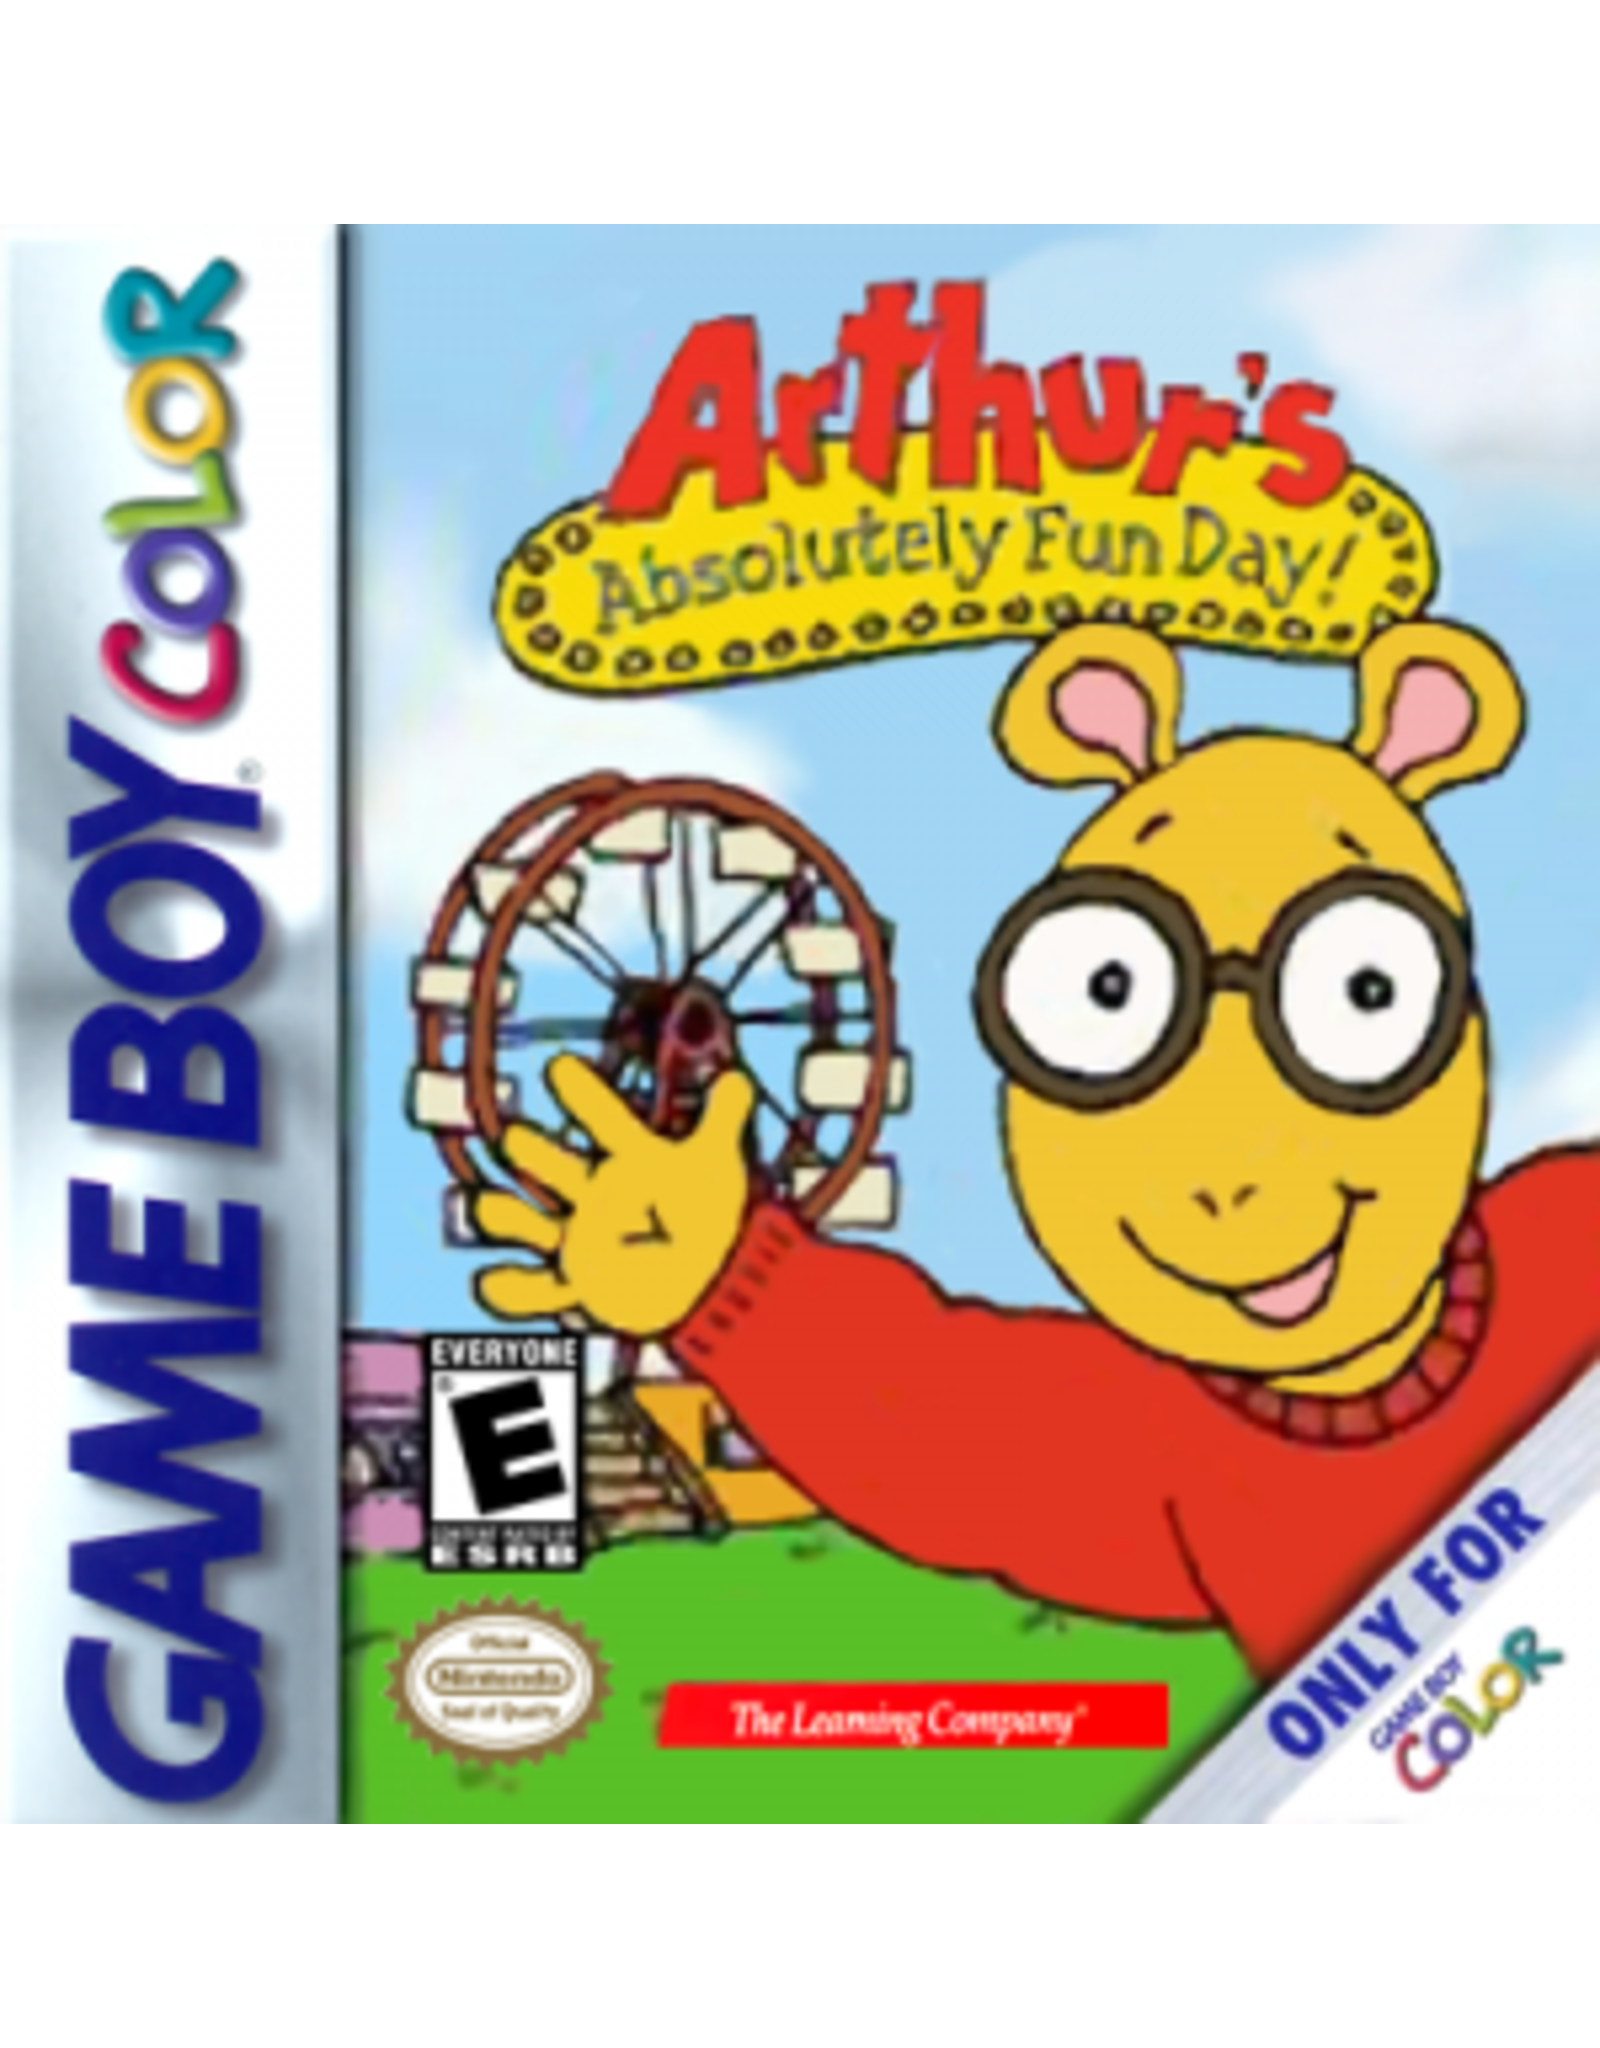 GameBoy Color Arthur's Absolutely Fun Day (Cart Only)